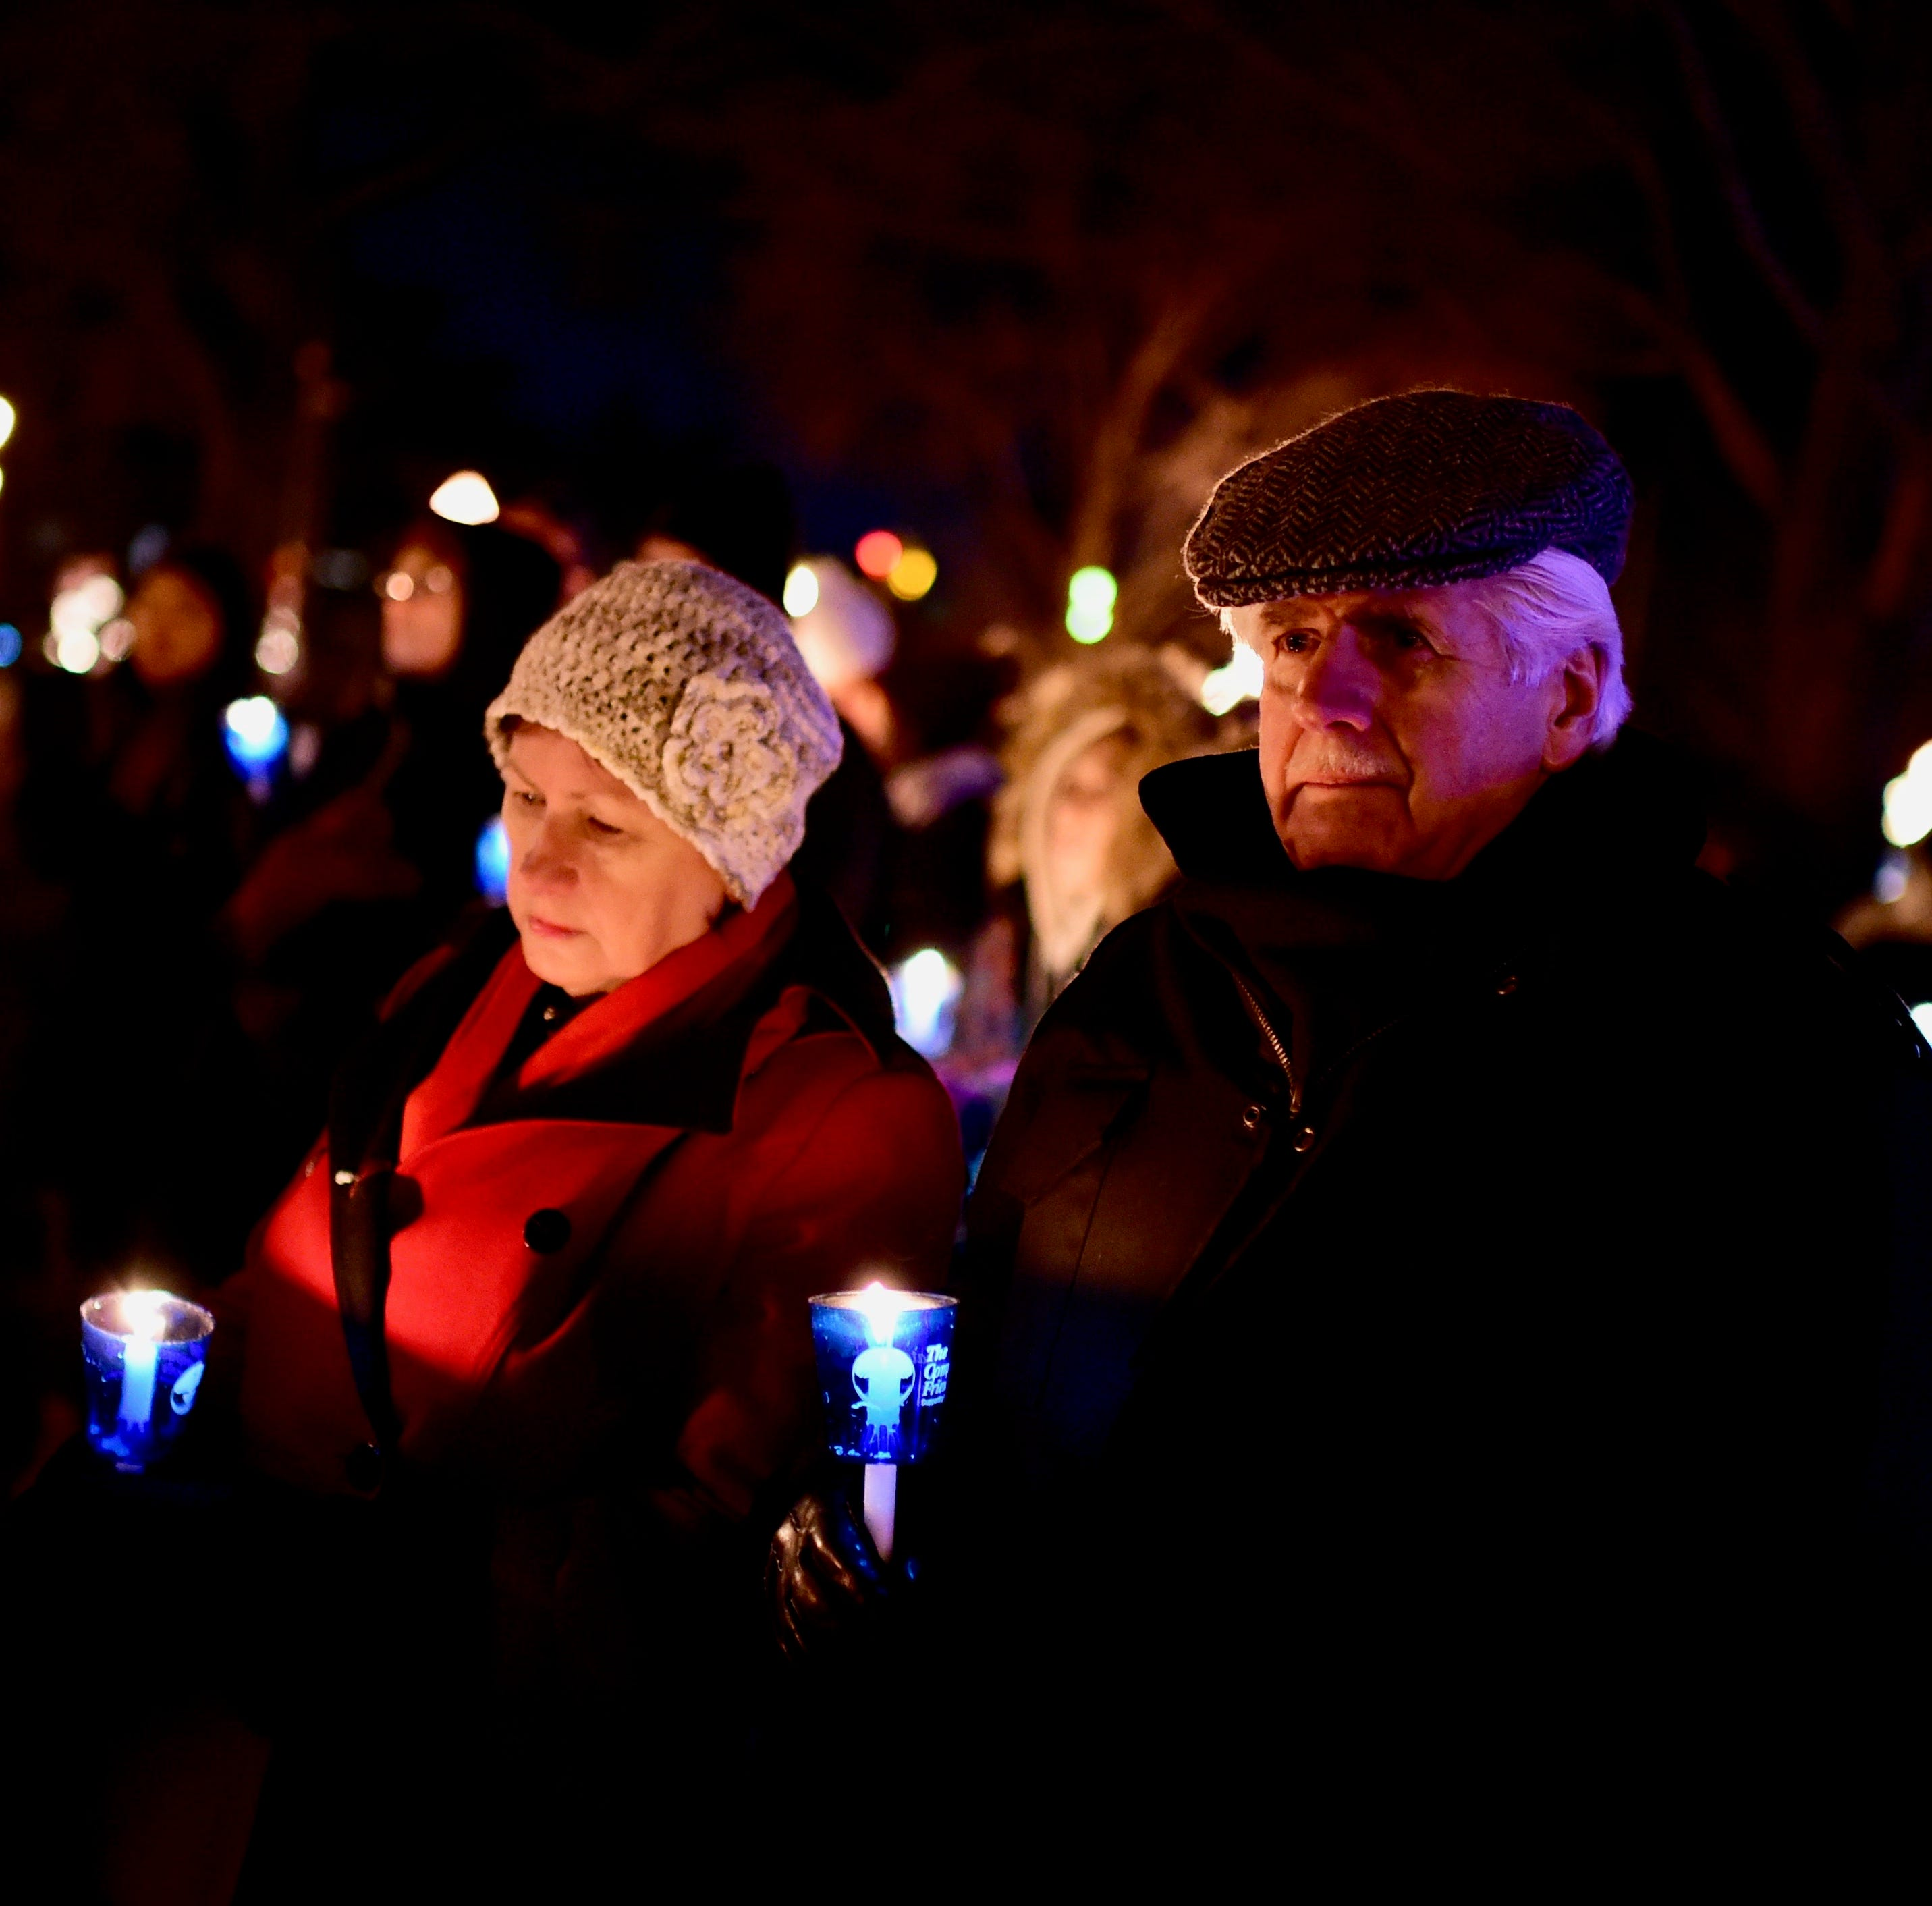 Beacon of light: Vigil honors children lost too soon